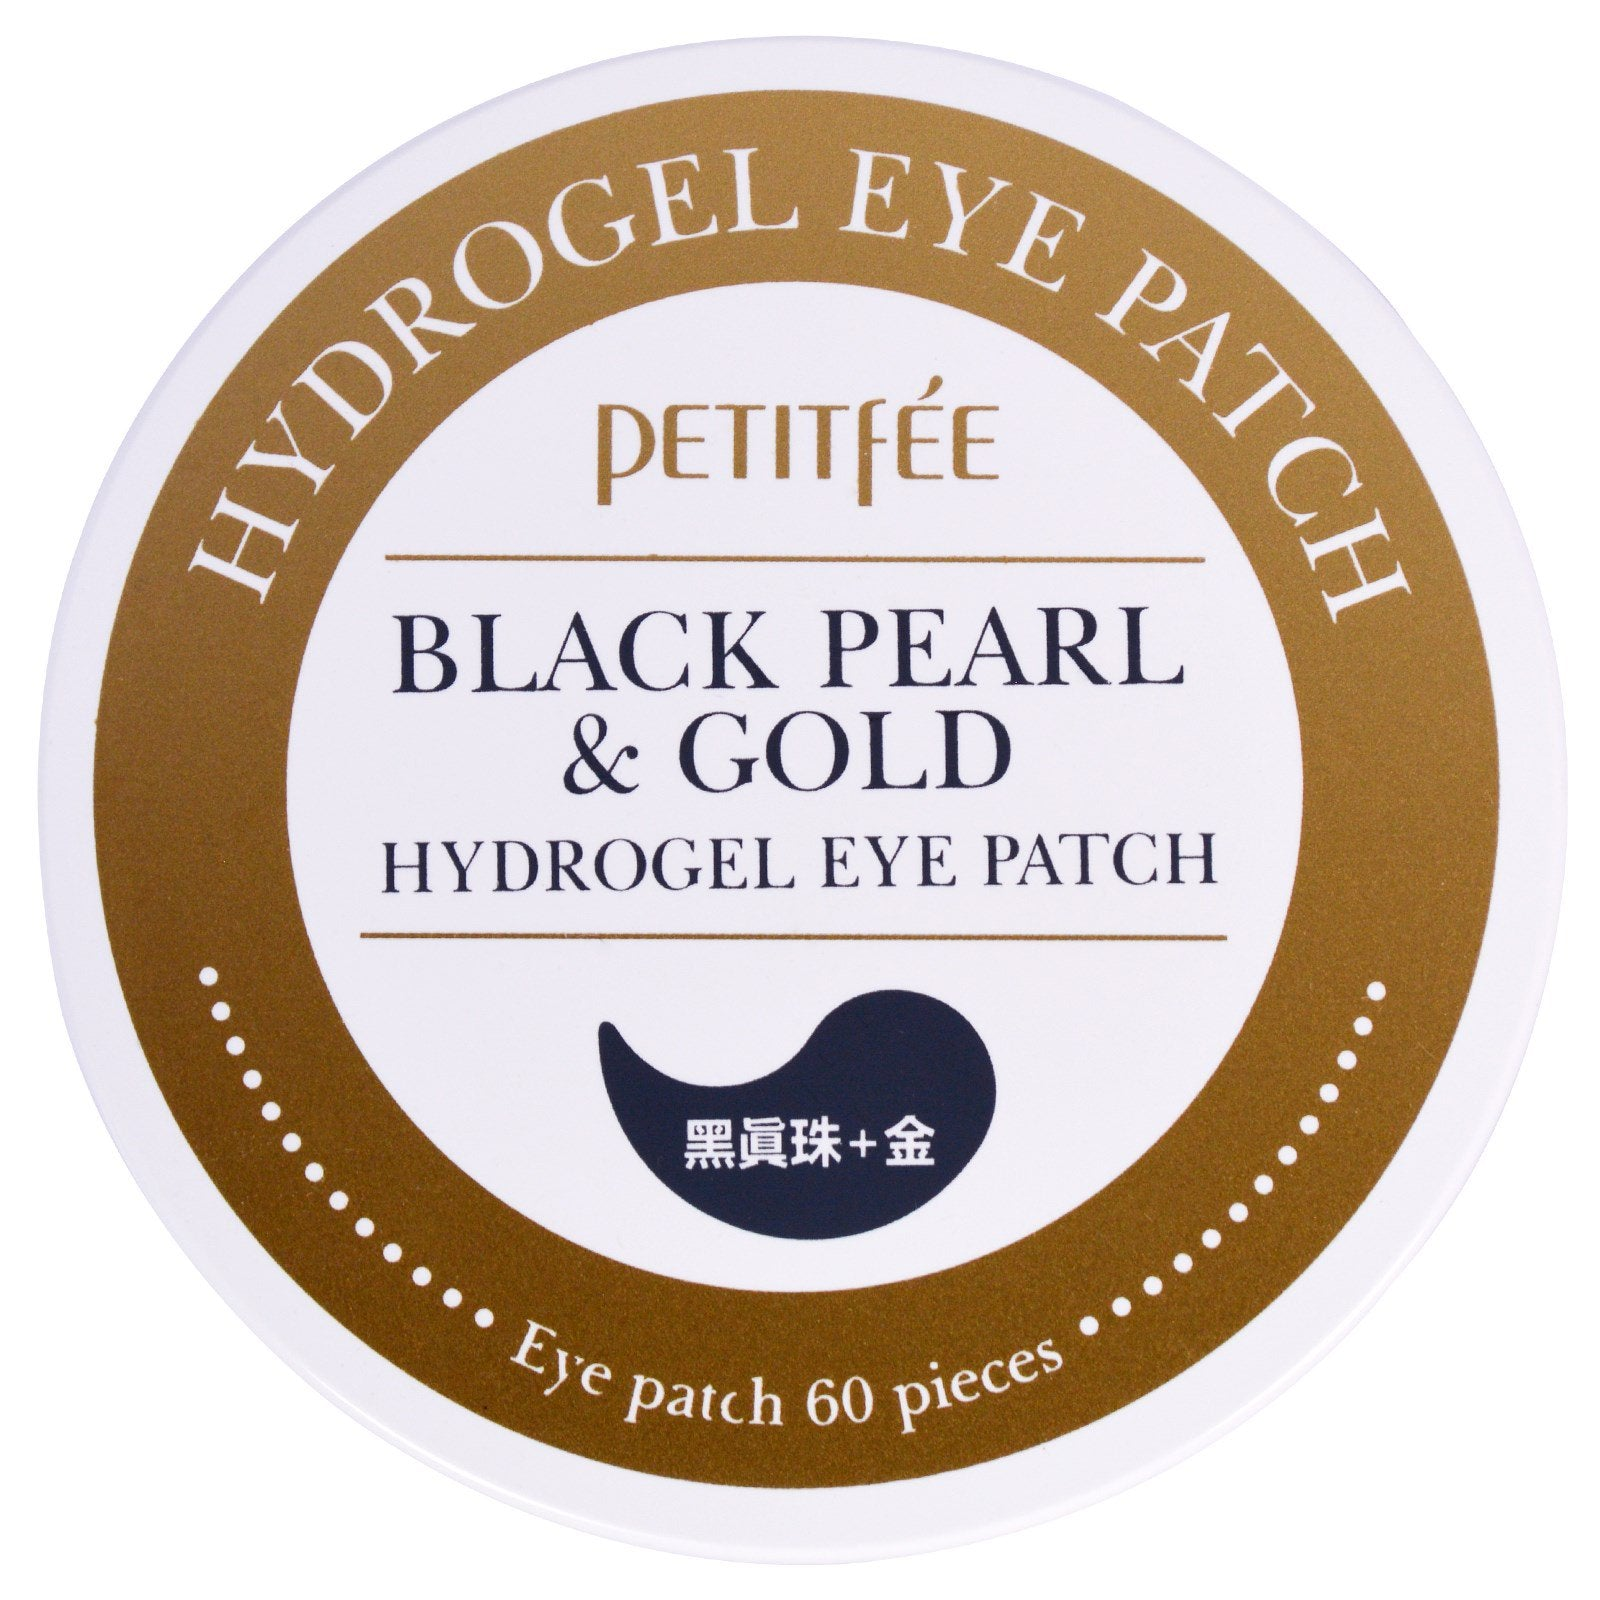 Petitfee, Black Pearl & Gold Hydrogel Eye Patch, 60 Patches